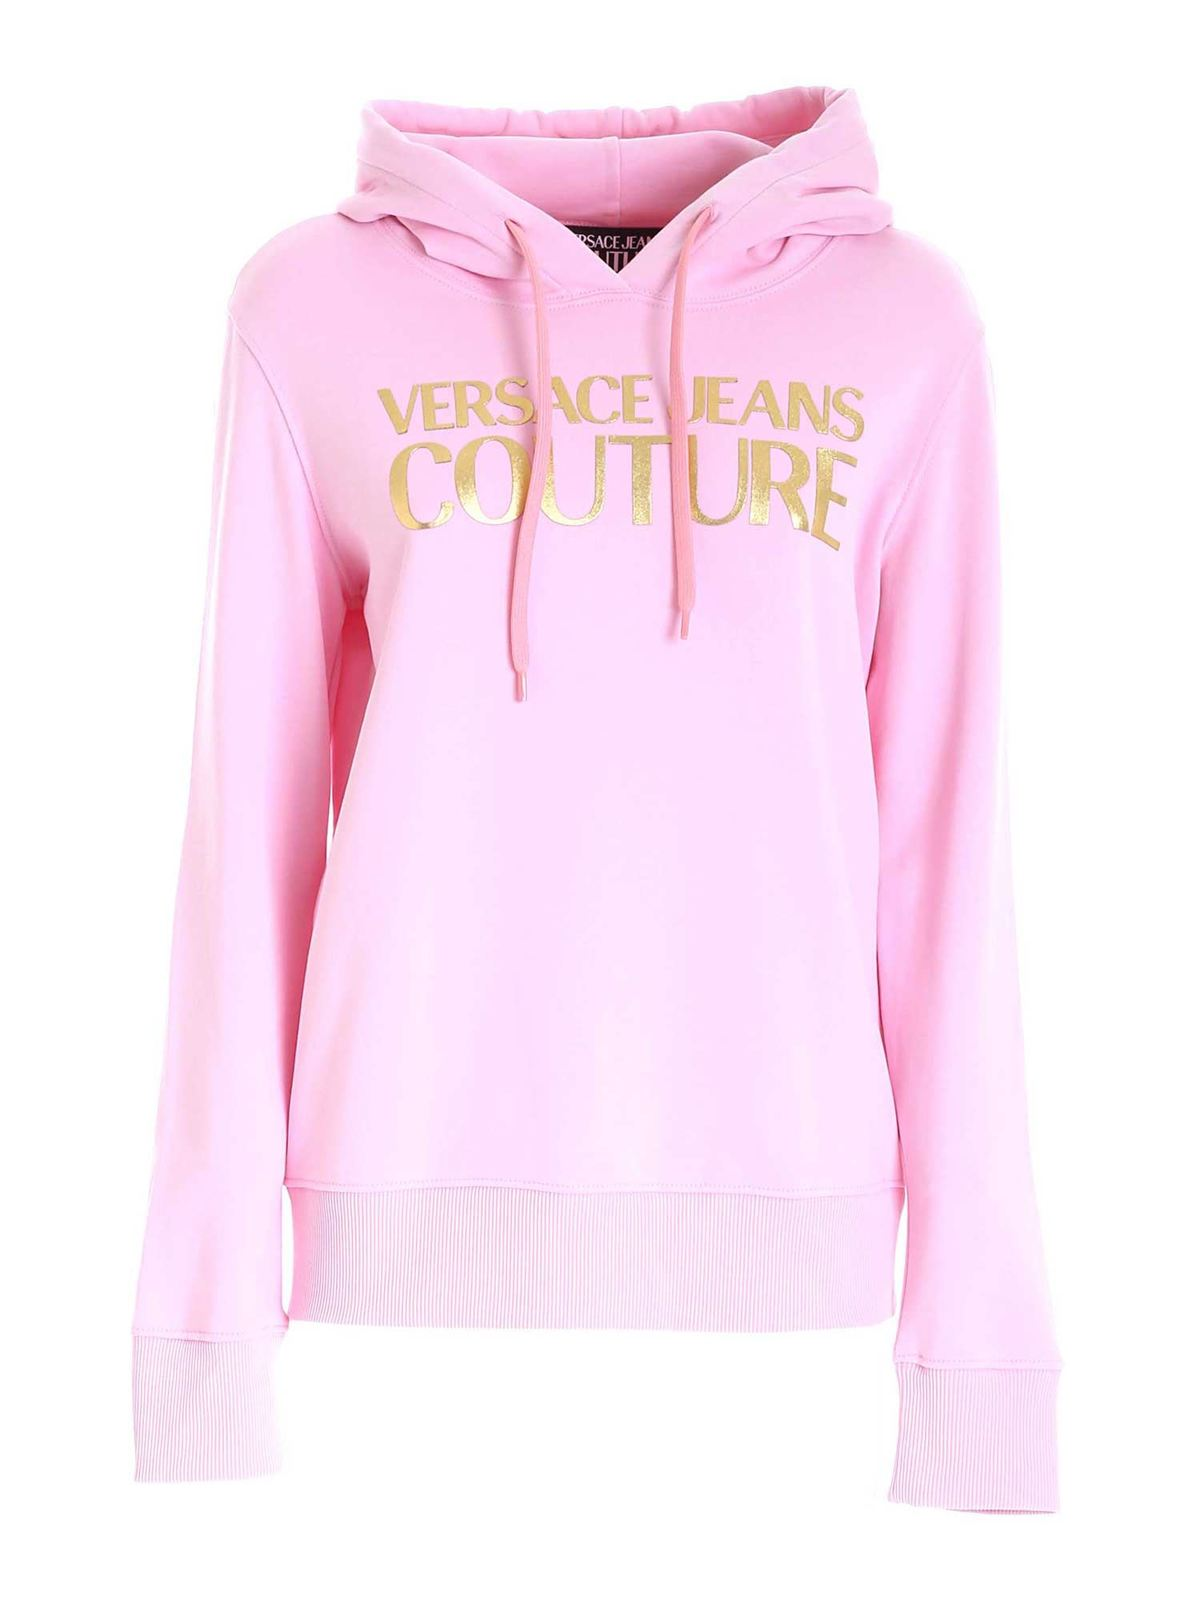 VERSACE JEANS COUTURE PINK HOODIE